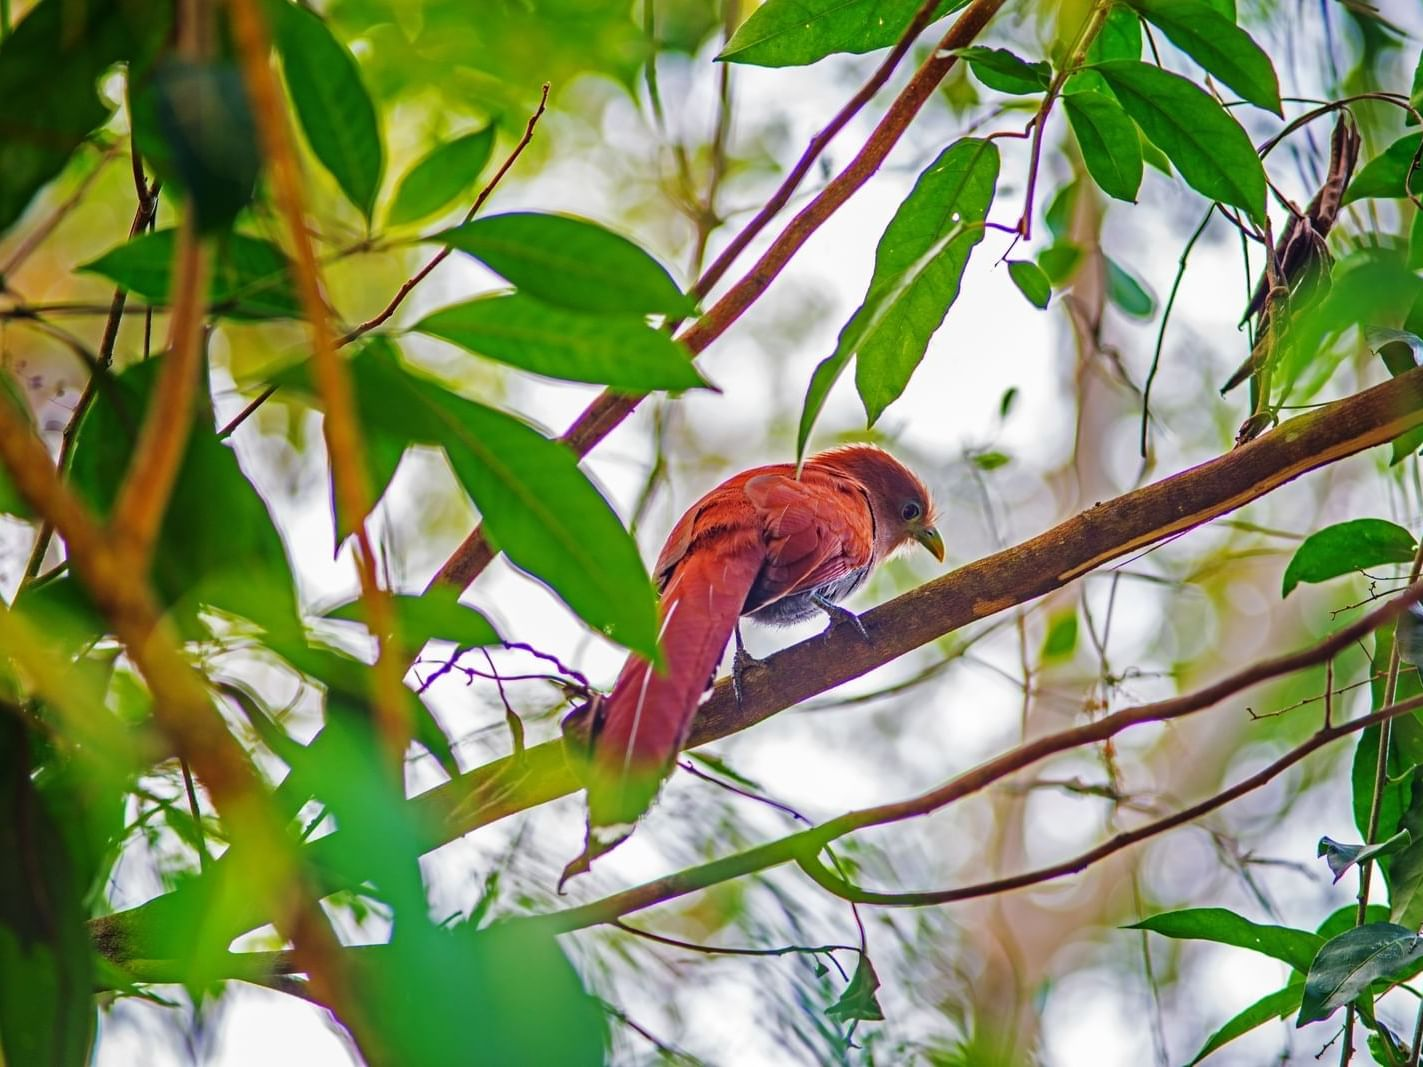 Bird on a branch in the Chetumal - Kohunlich city